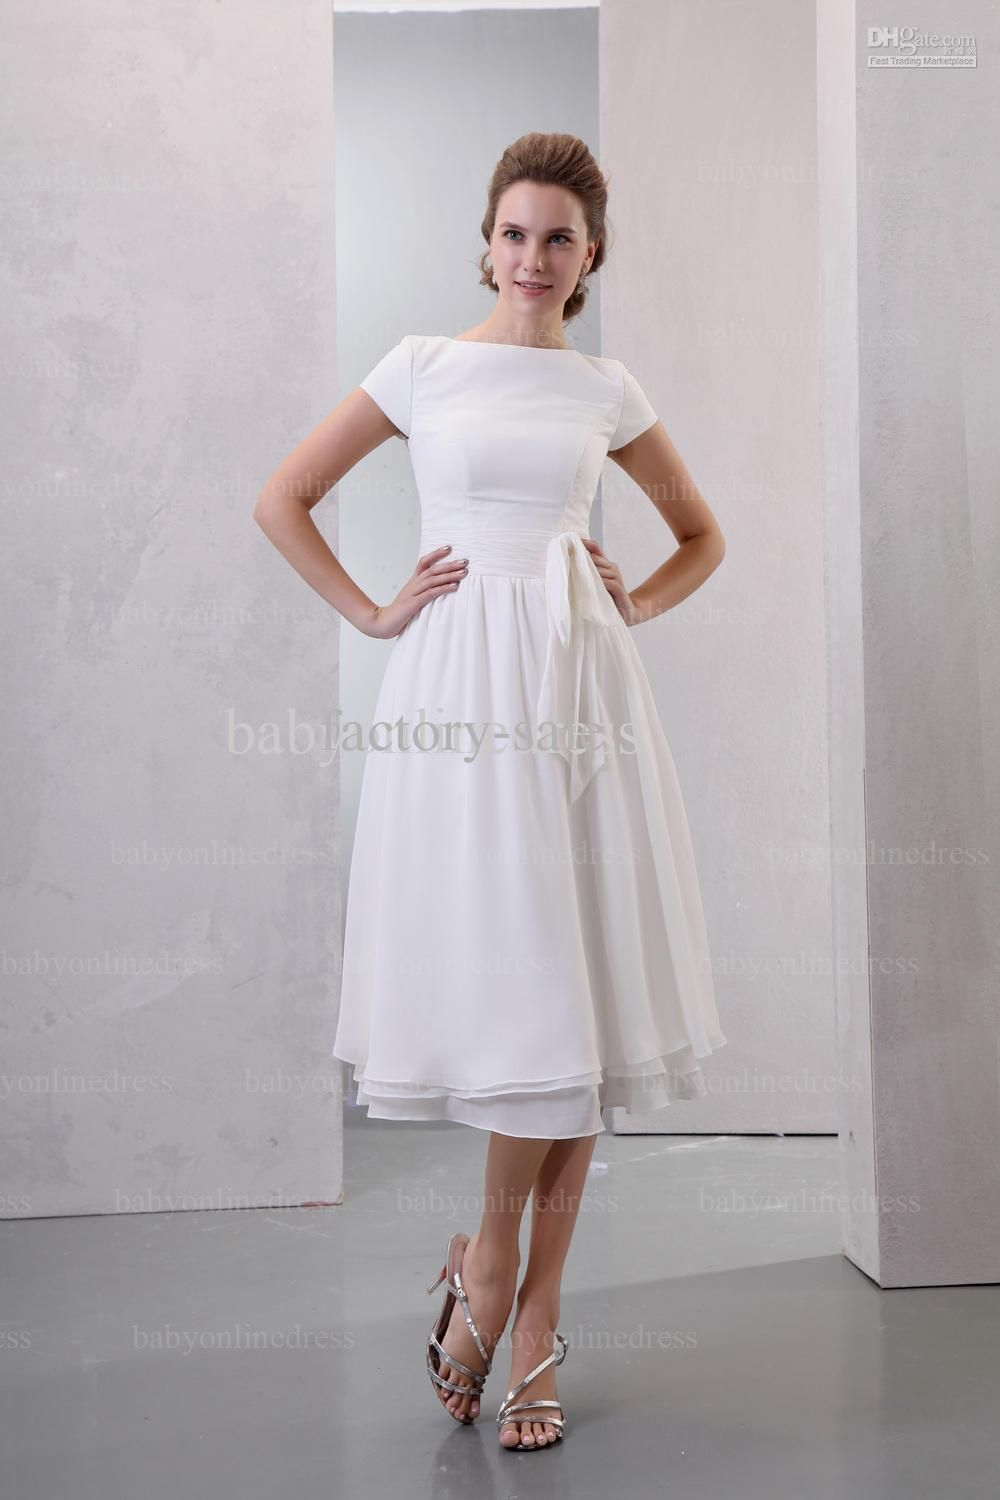 confirmationdresses in 2020 | girls confirmation dresses